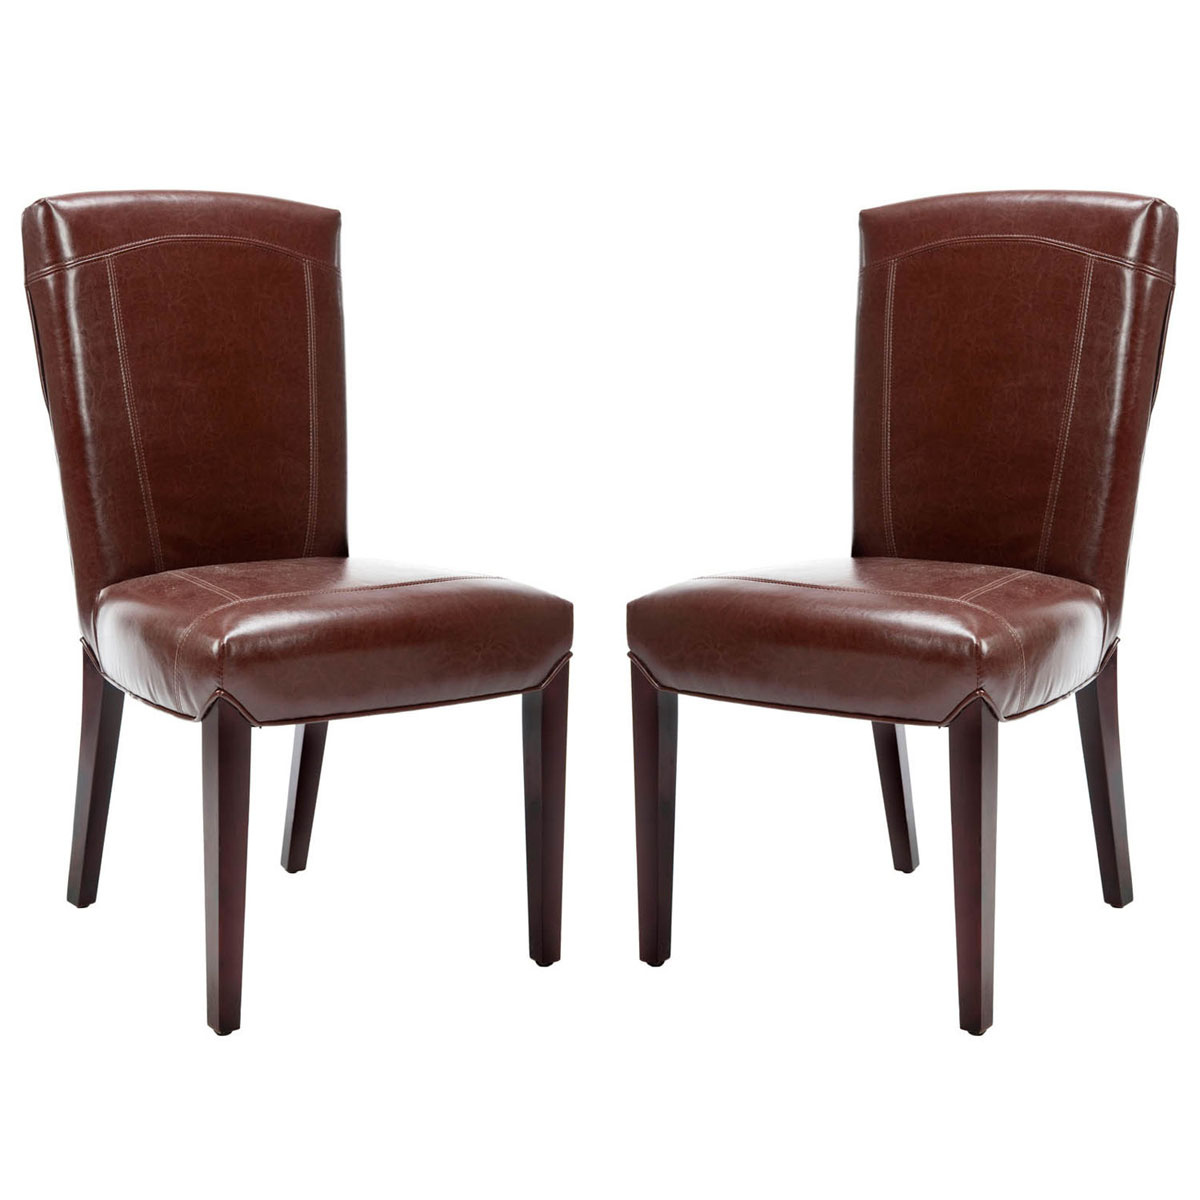 hud8200a set2 dining chairs furniture by safavieh. Black Bedroom Furniture Sets. Home Design Ideas